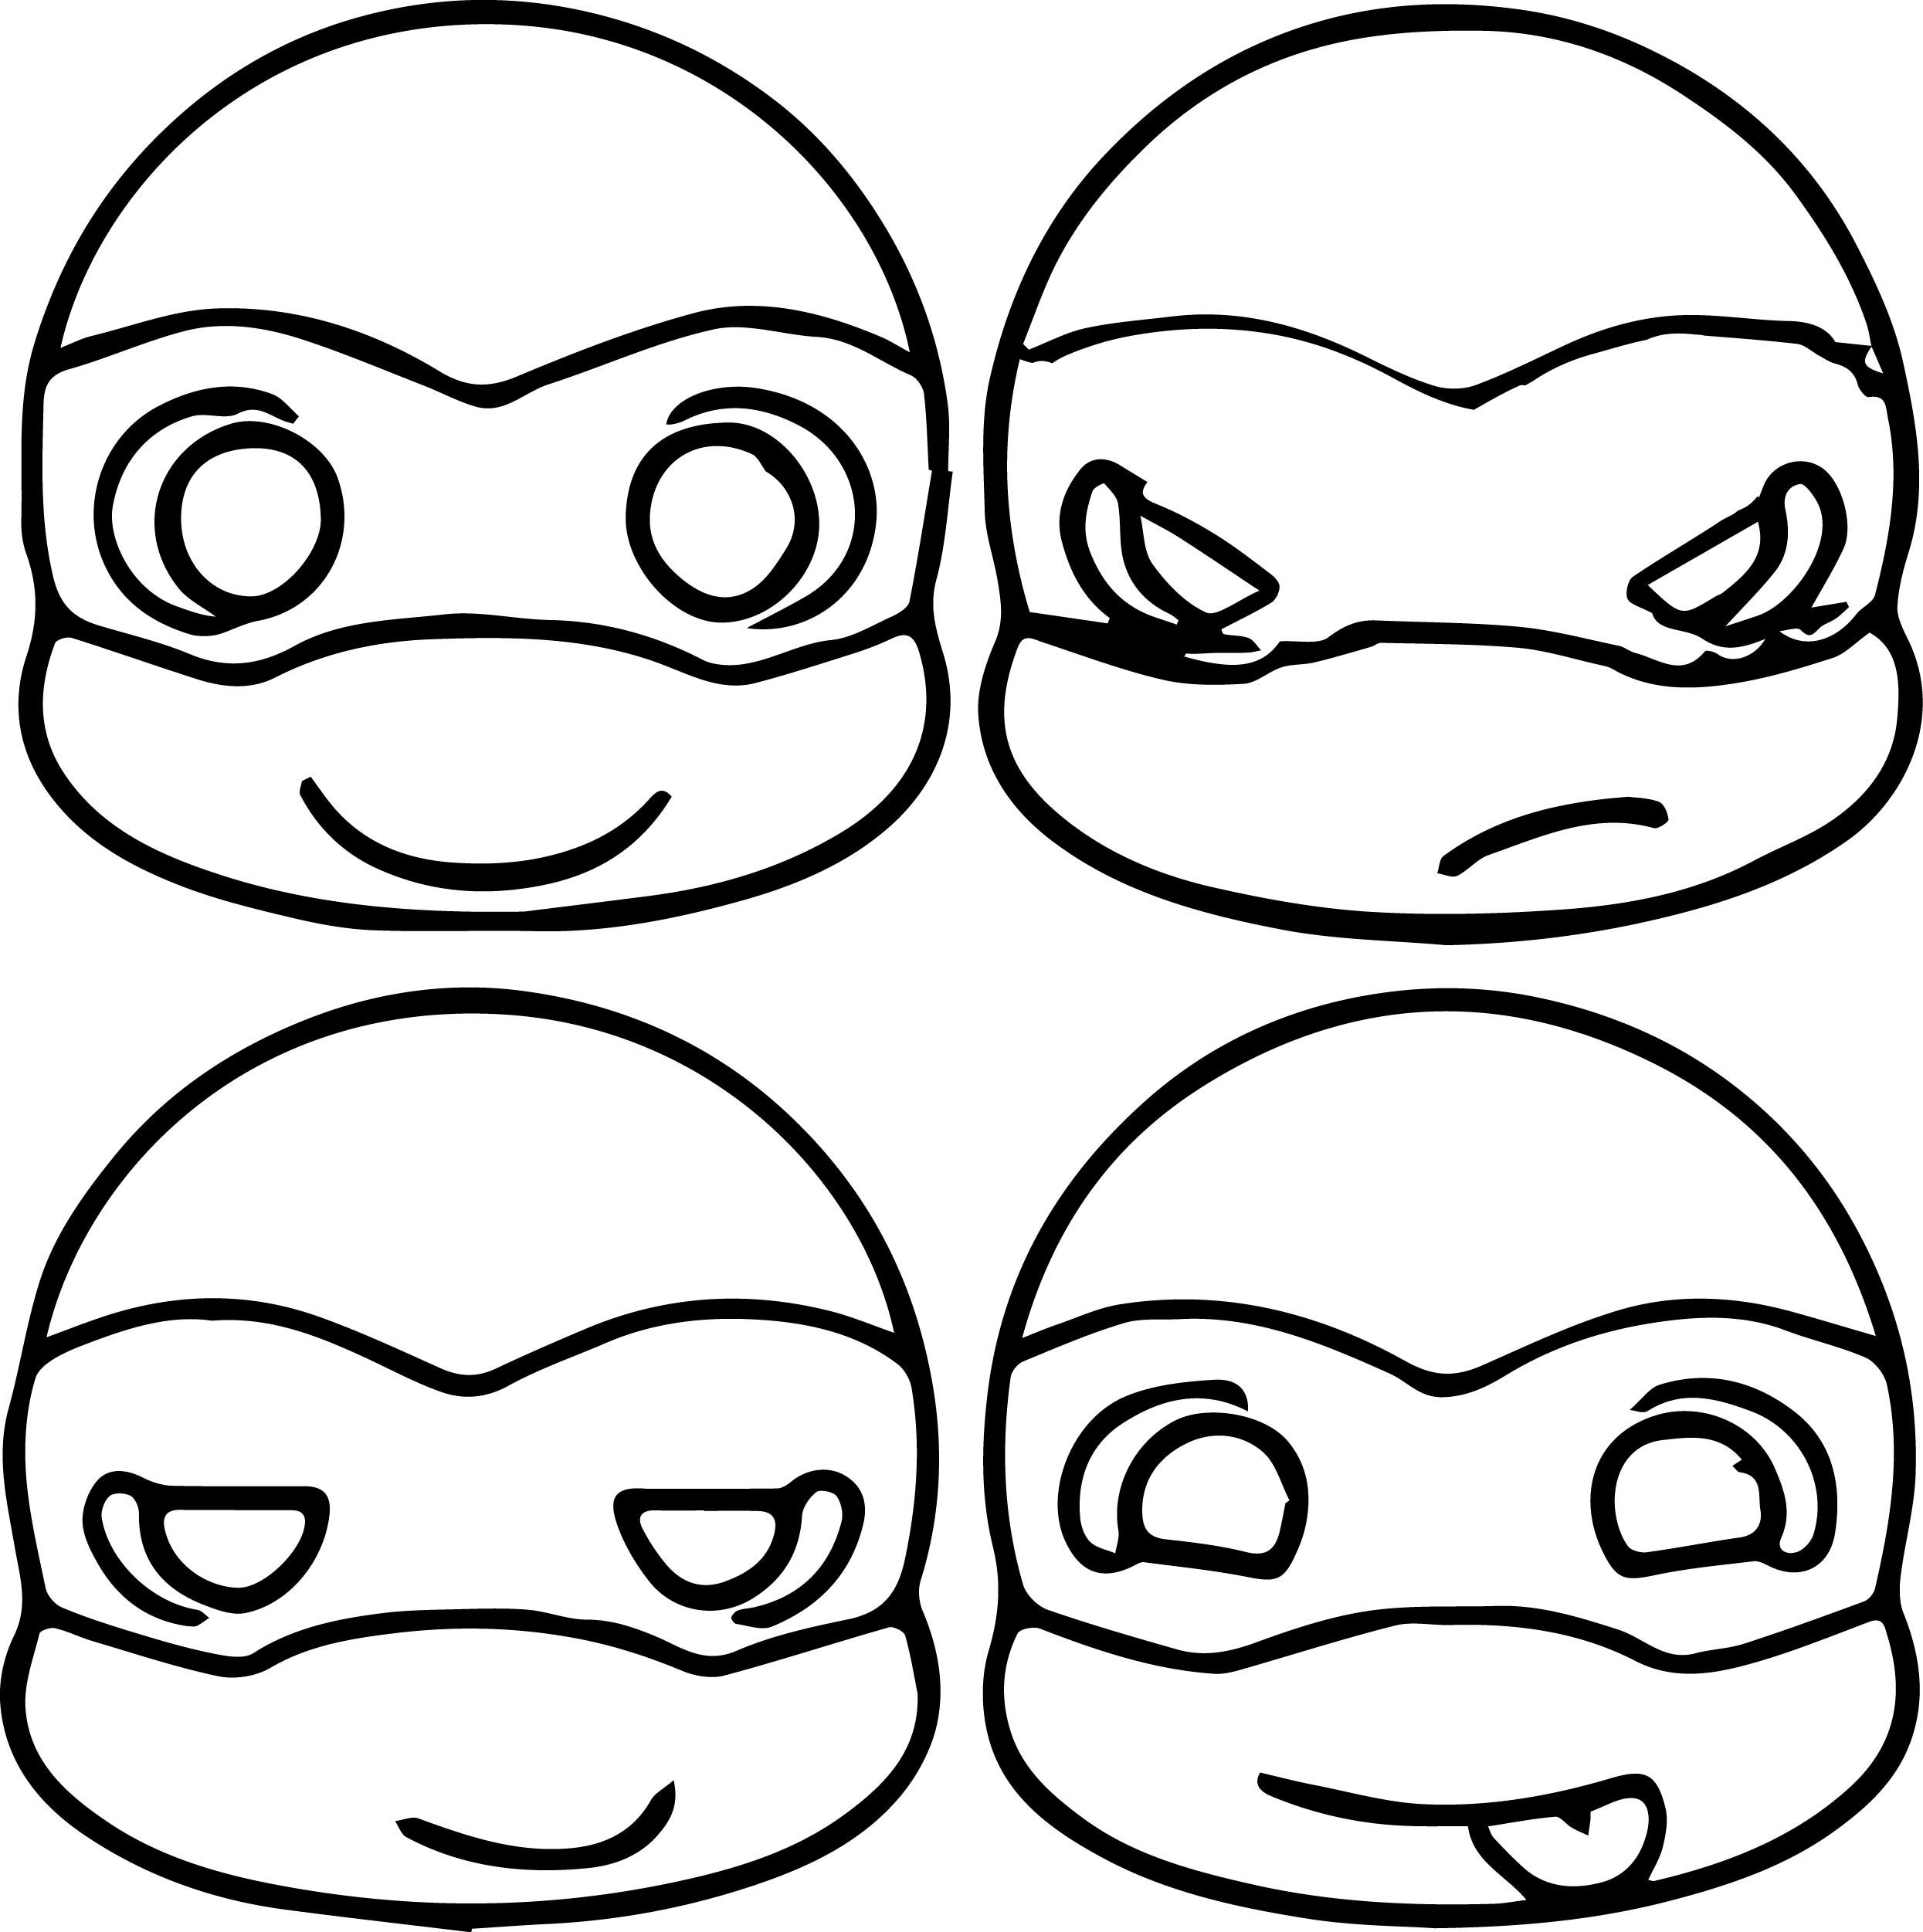 Tmnt Coloring Pages Raphael Archives In Tmnt Coloring Pages | Clubs ...